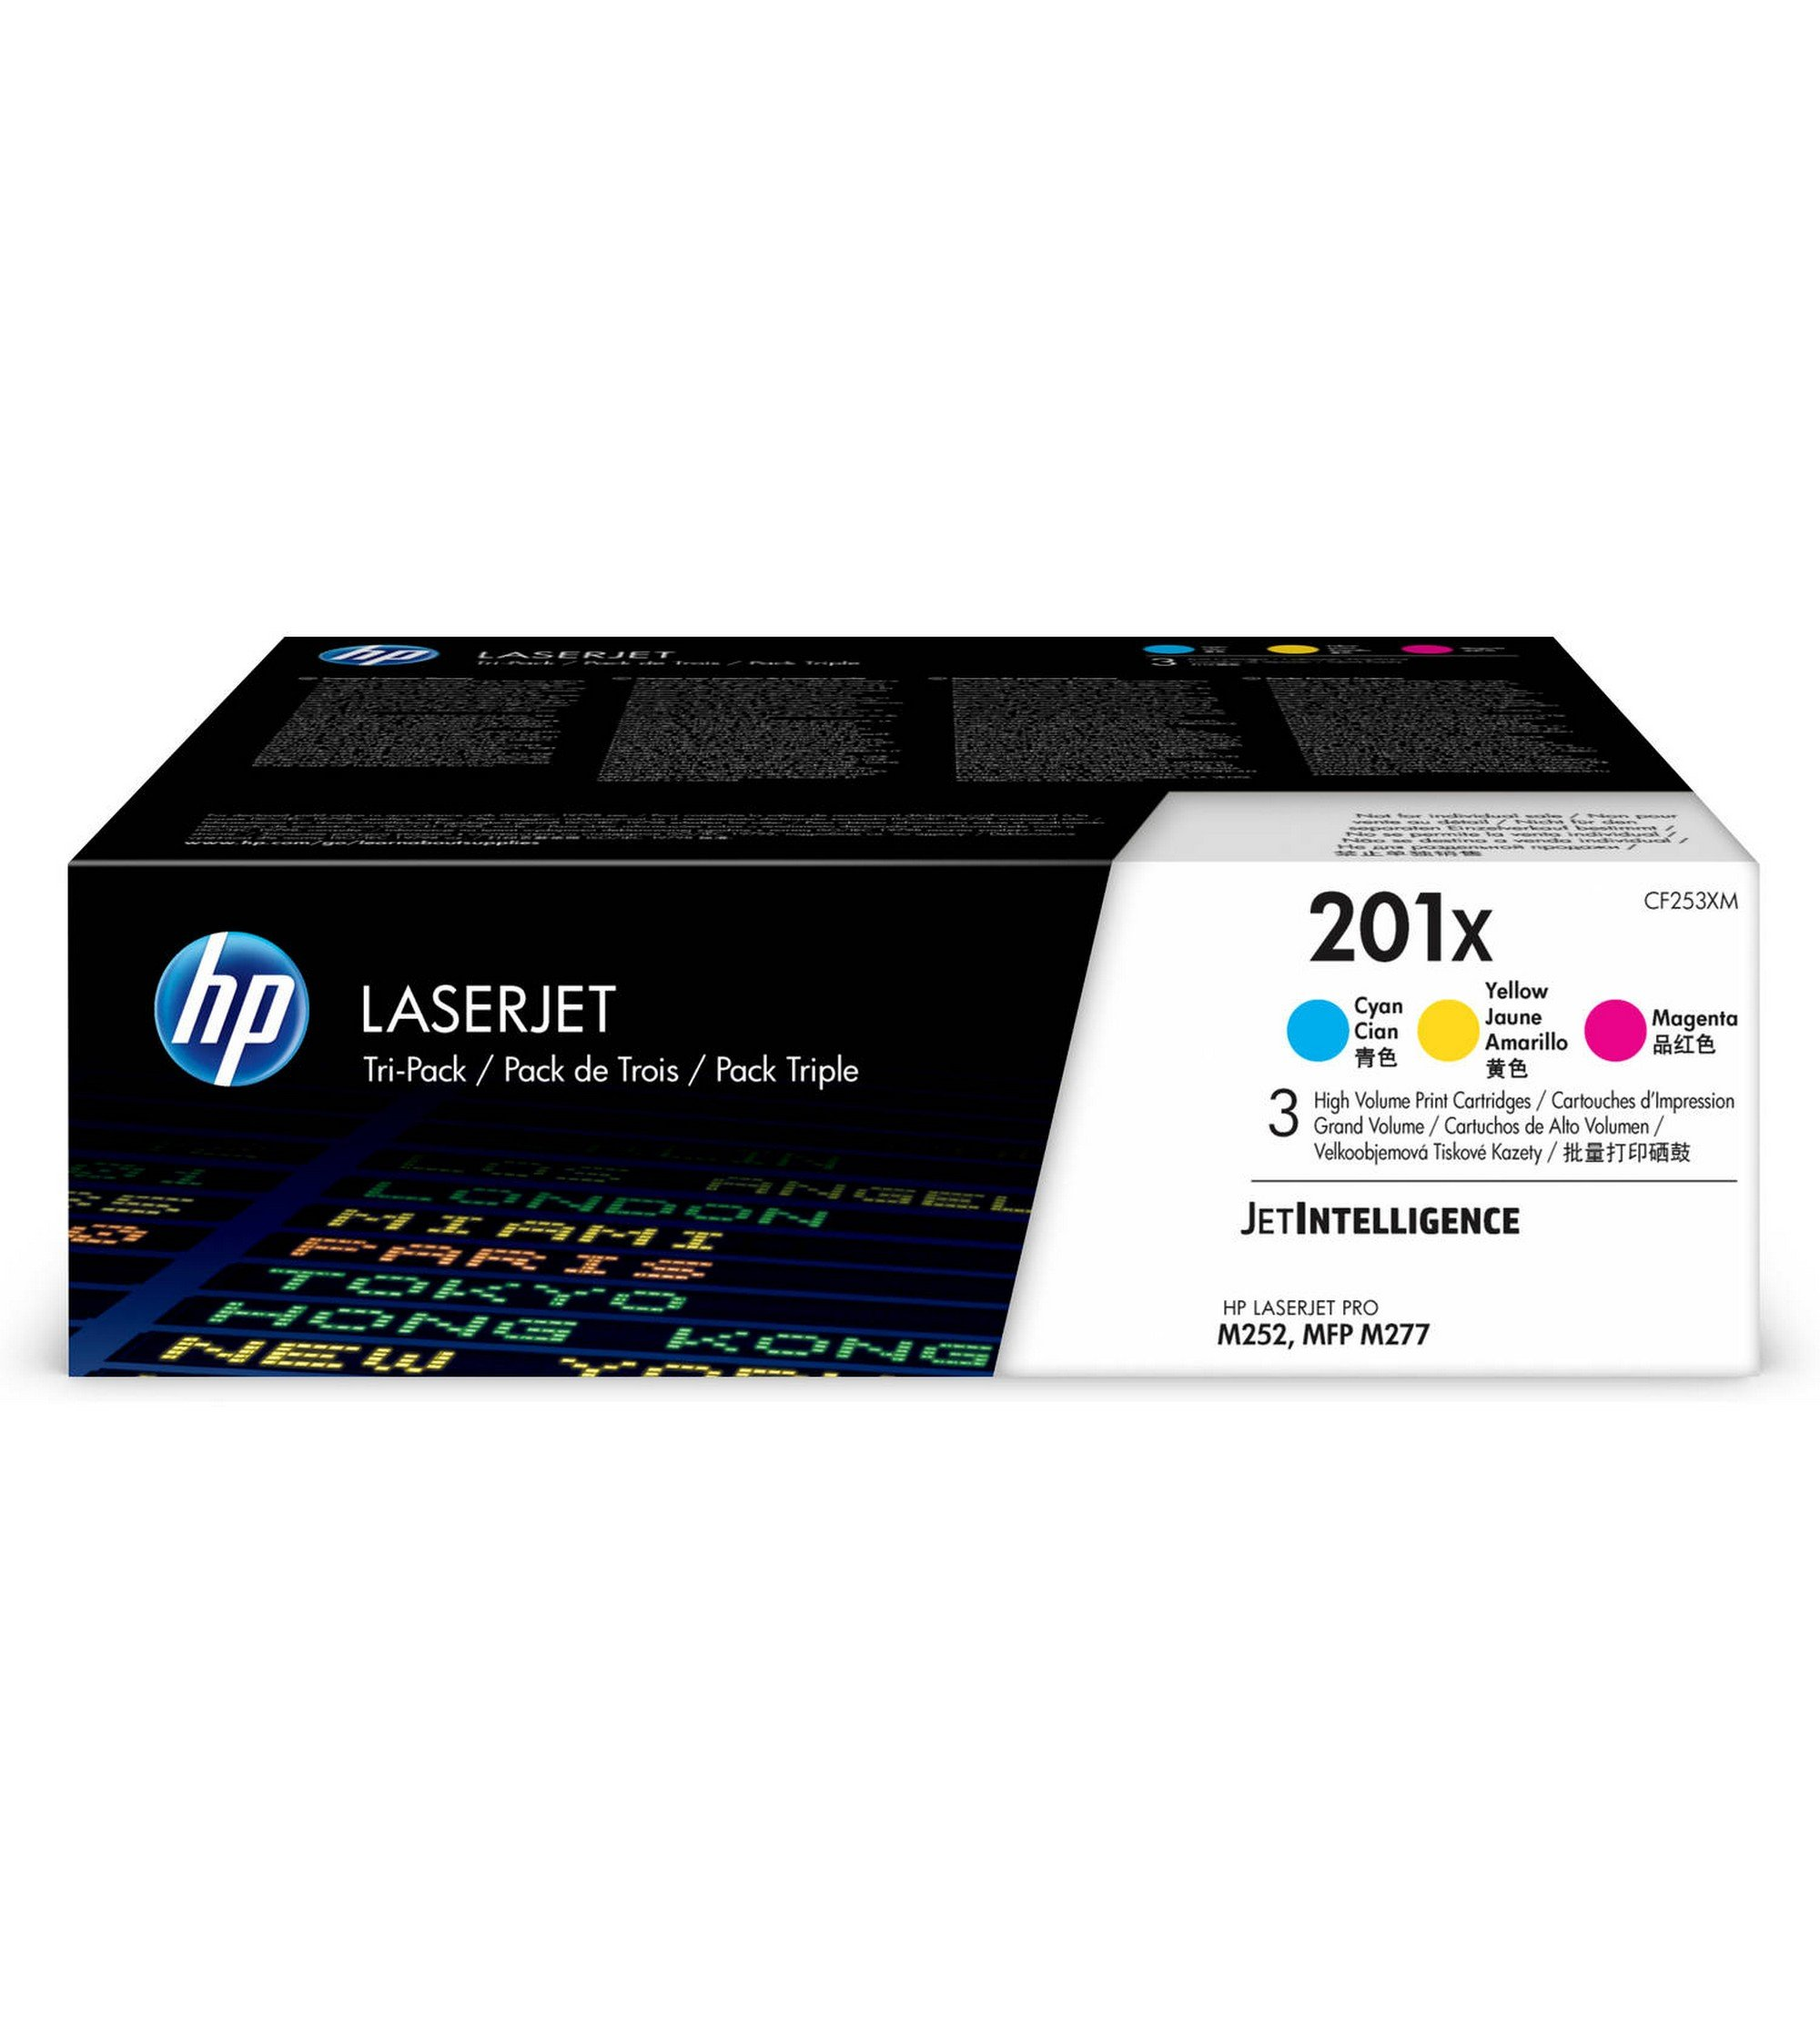 HP CF253XM  201X Toner Cartridge Cyan, Yellow & Magenta High Yield, 3 Toner Cartridges (CF401X,CF402X, CF403X) for  Color LaserJet Pro M252dw, M277, M277c6, M277dw by HP